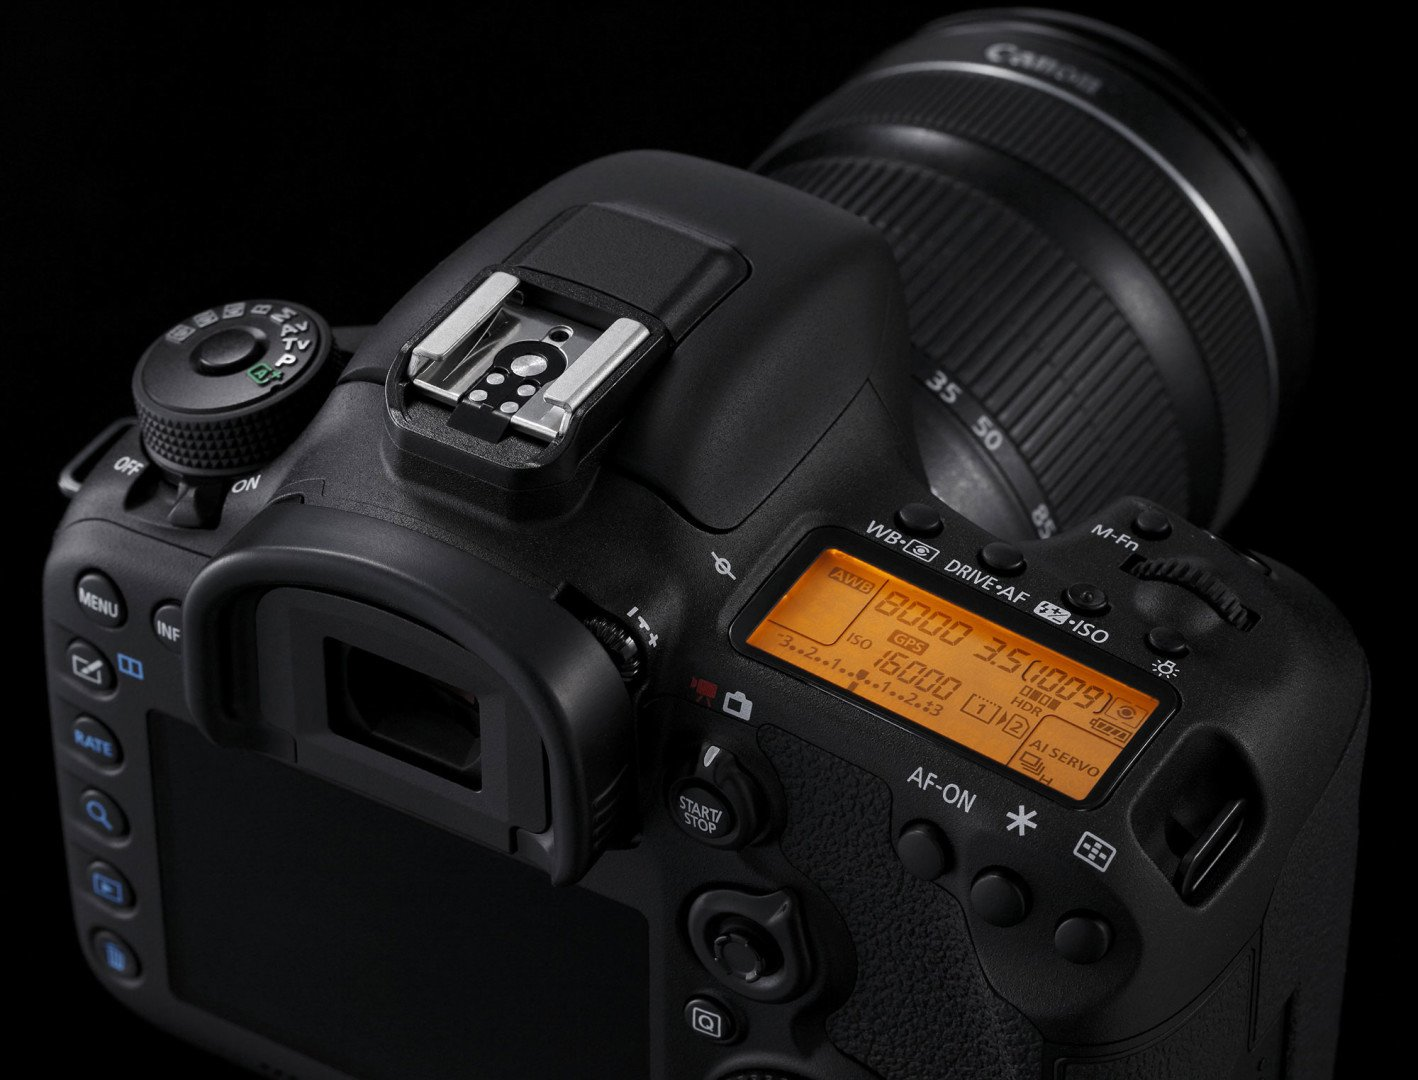 Canon 7DII featured